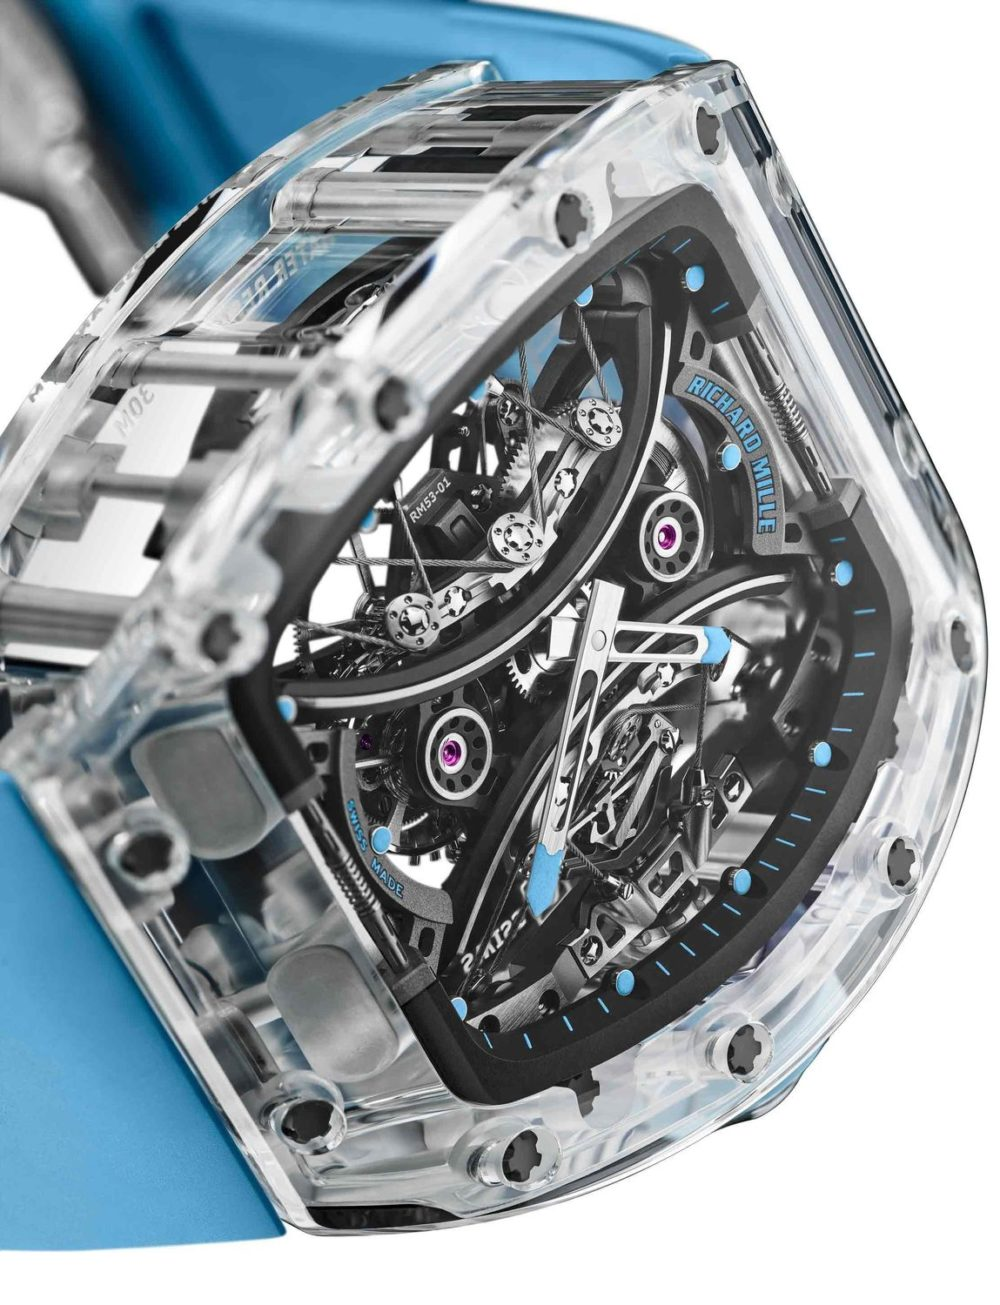 Richard Mille's RM 53-02 Tourbillon Sapphire is the ultimate expression of transparency